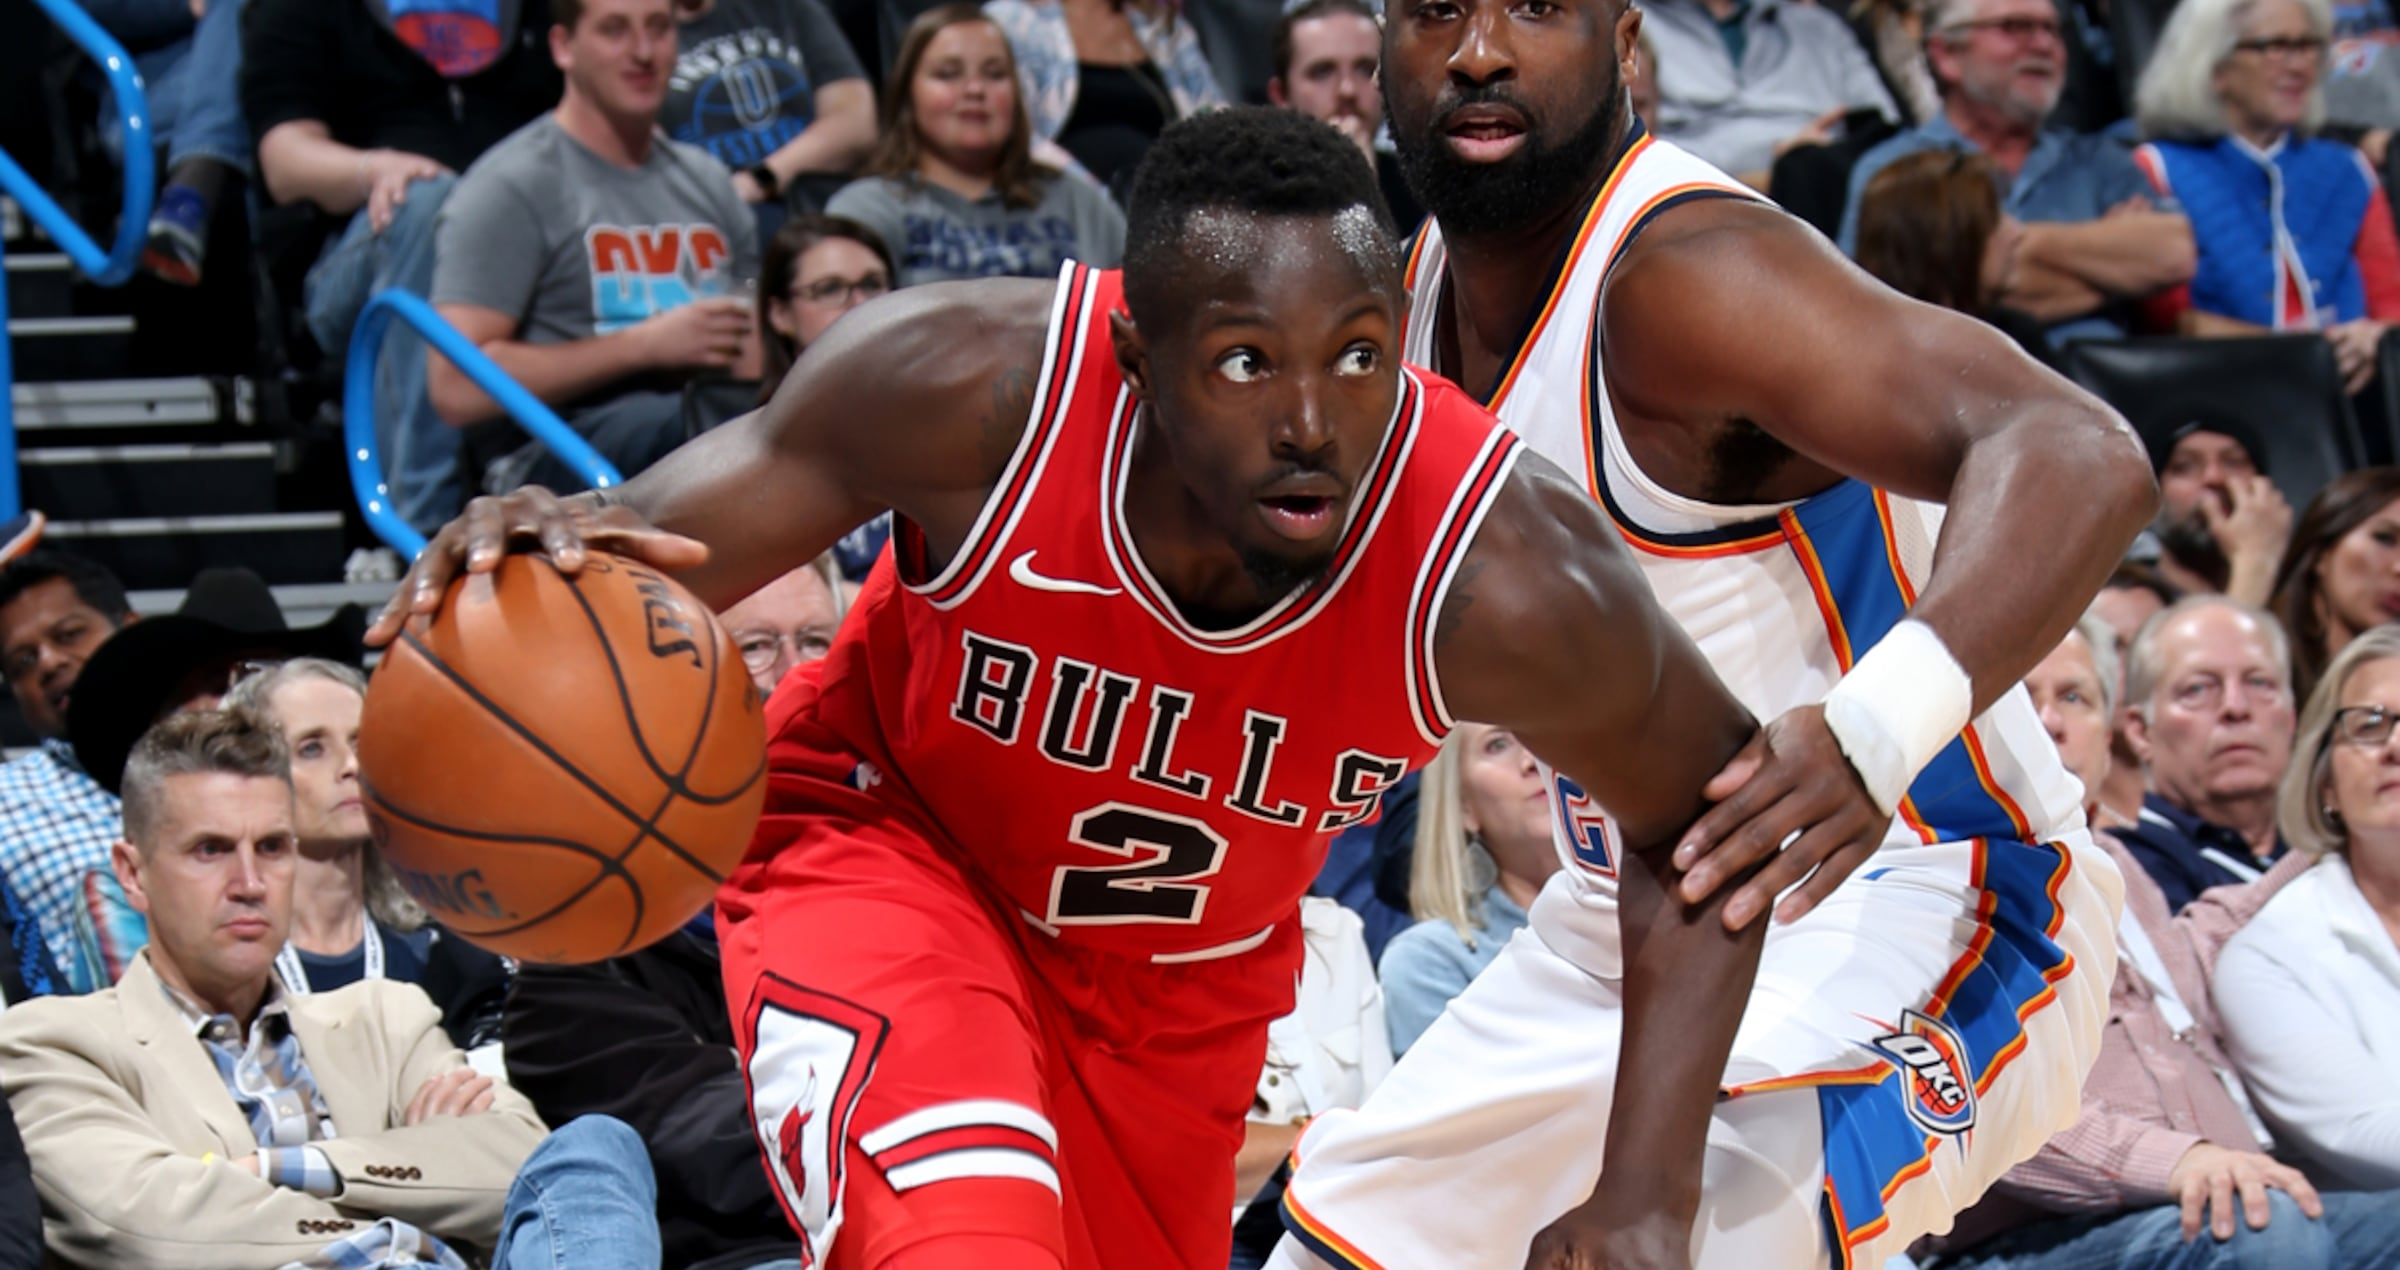 NOVEMBER 15: Jerian Grant #2 of the Chicago Bulls handles the ball during the game against the Oklahoma City Thunder on November 15, 2017 at Chesapeake Energy Arena in Oklahoma City, Oklahoma